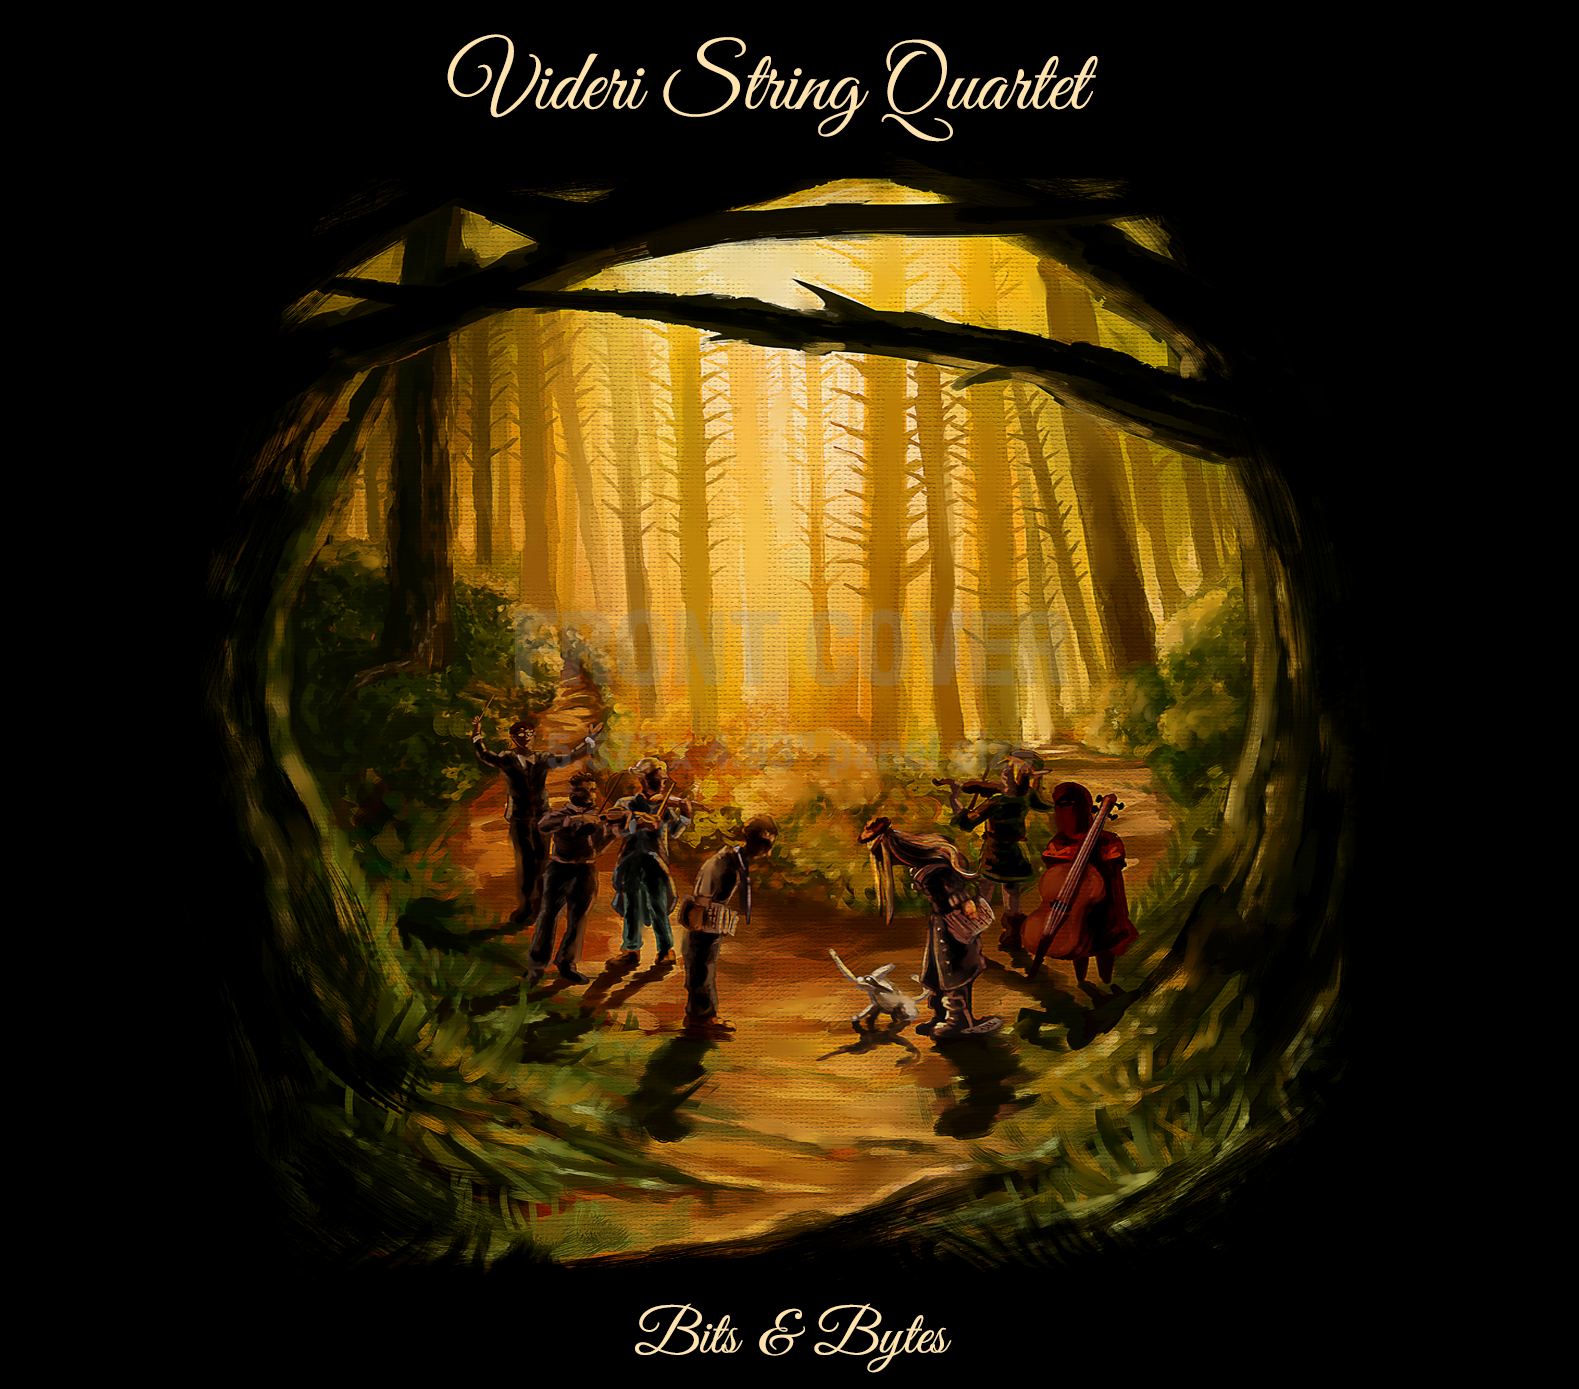 """Caption: The cover art designed by Nate Horsfall for the album """"Bits and Bytes"""" by the Videri String Quartet., Credit: CREDIT: DESIGN BY NATE HORSFALL; USED WITH PERMISSION."""